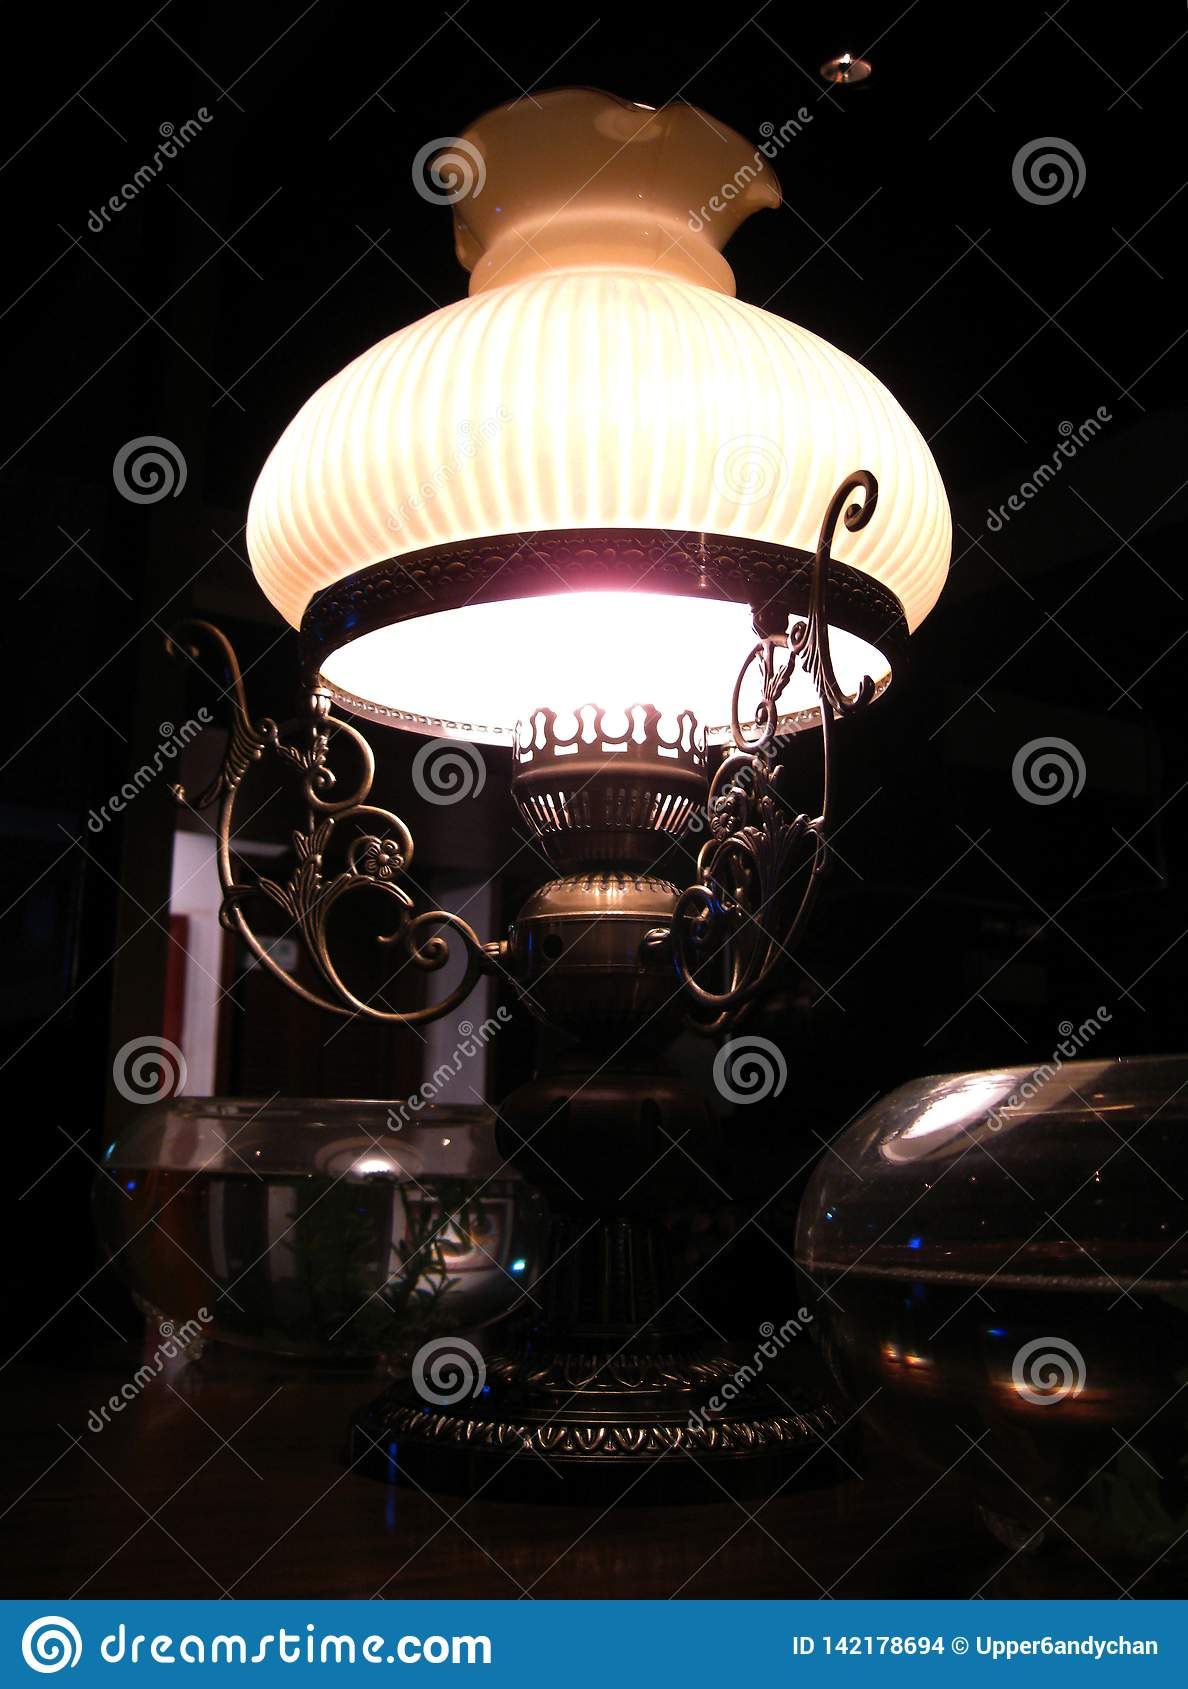 An elegant old-fashioned brass lamp gently shining from the dark corner near my table in the restaurant